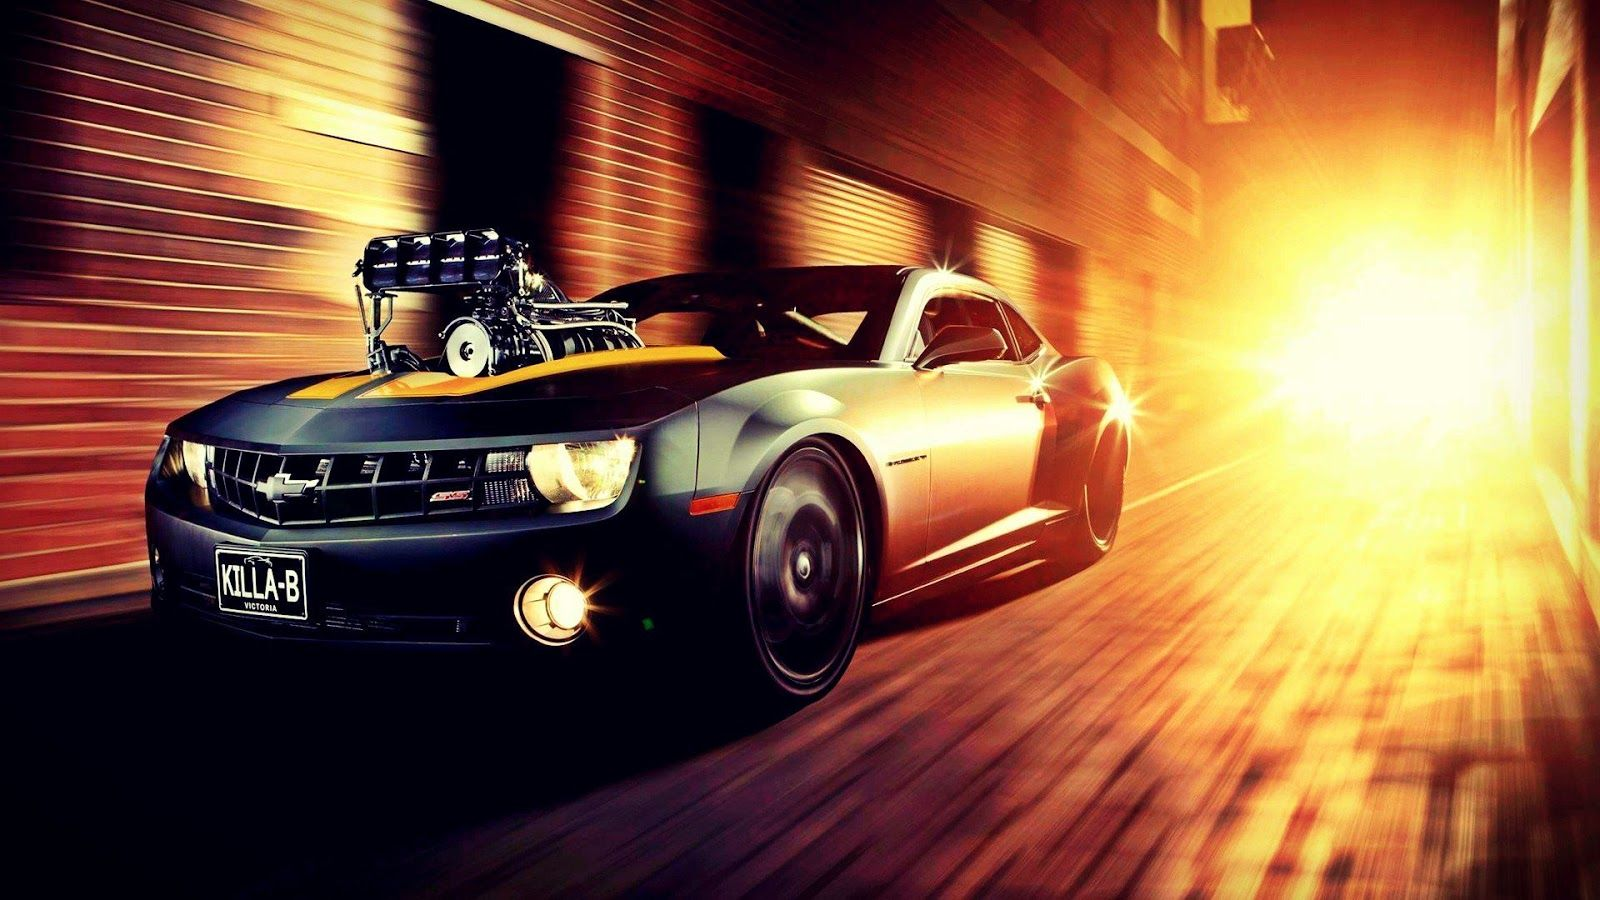 New Best Hd Car Background Editing Tools Car Wallpapers Car Car Backgrounds